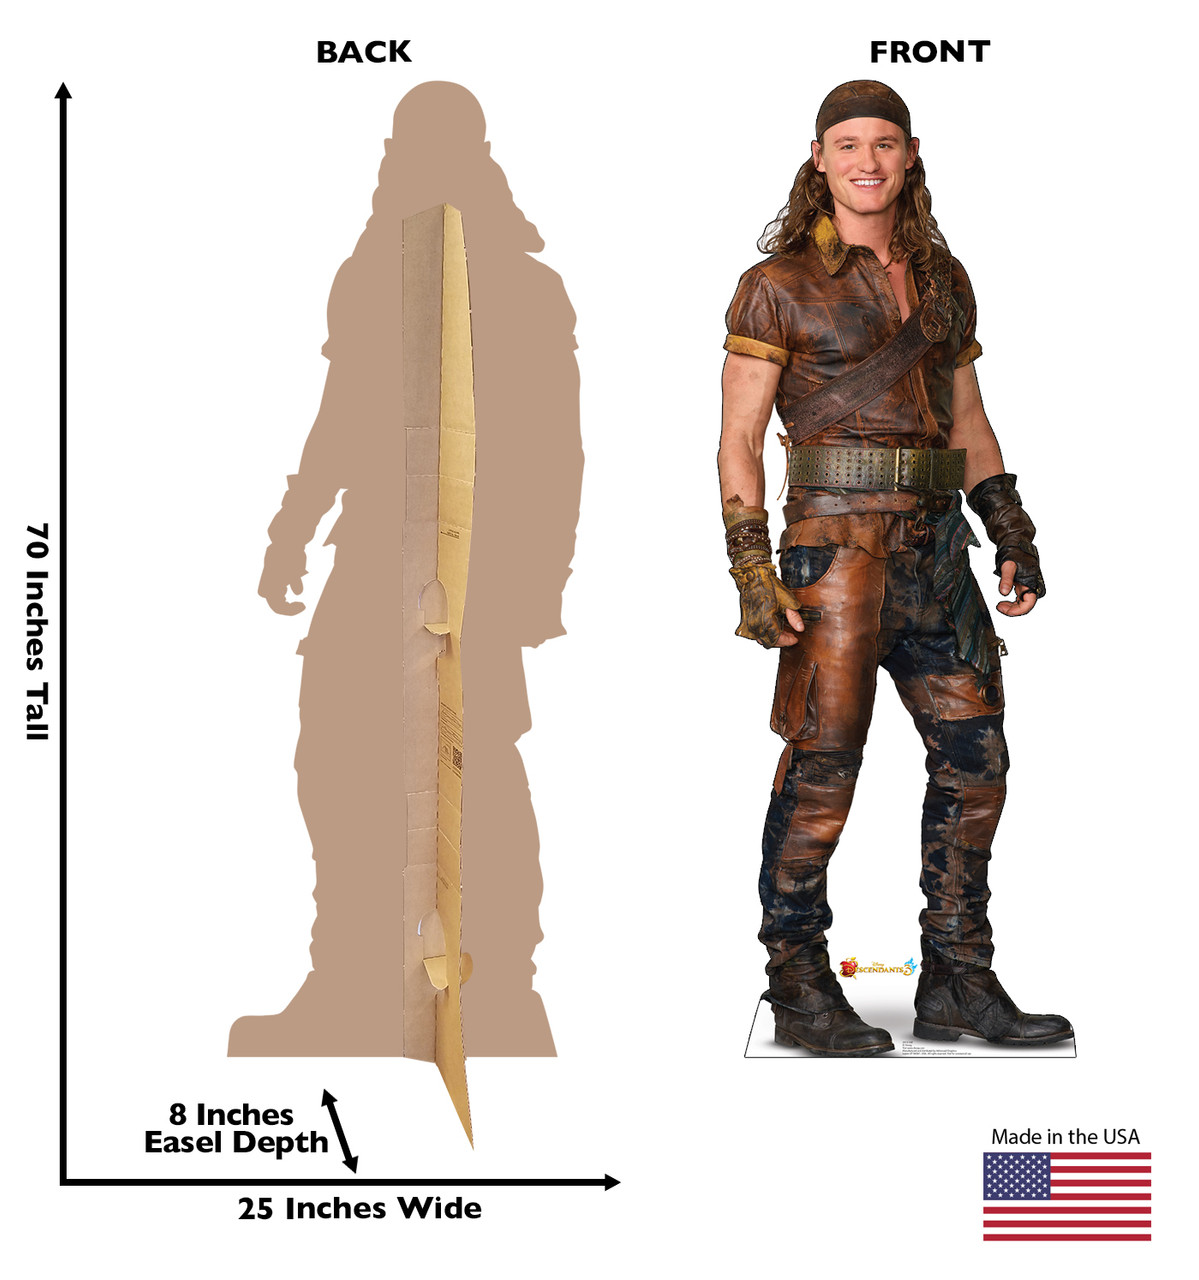 Gil - Disney's Descendants 3 Cardboard Cutout Front and Back View